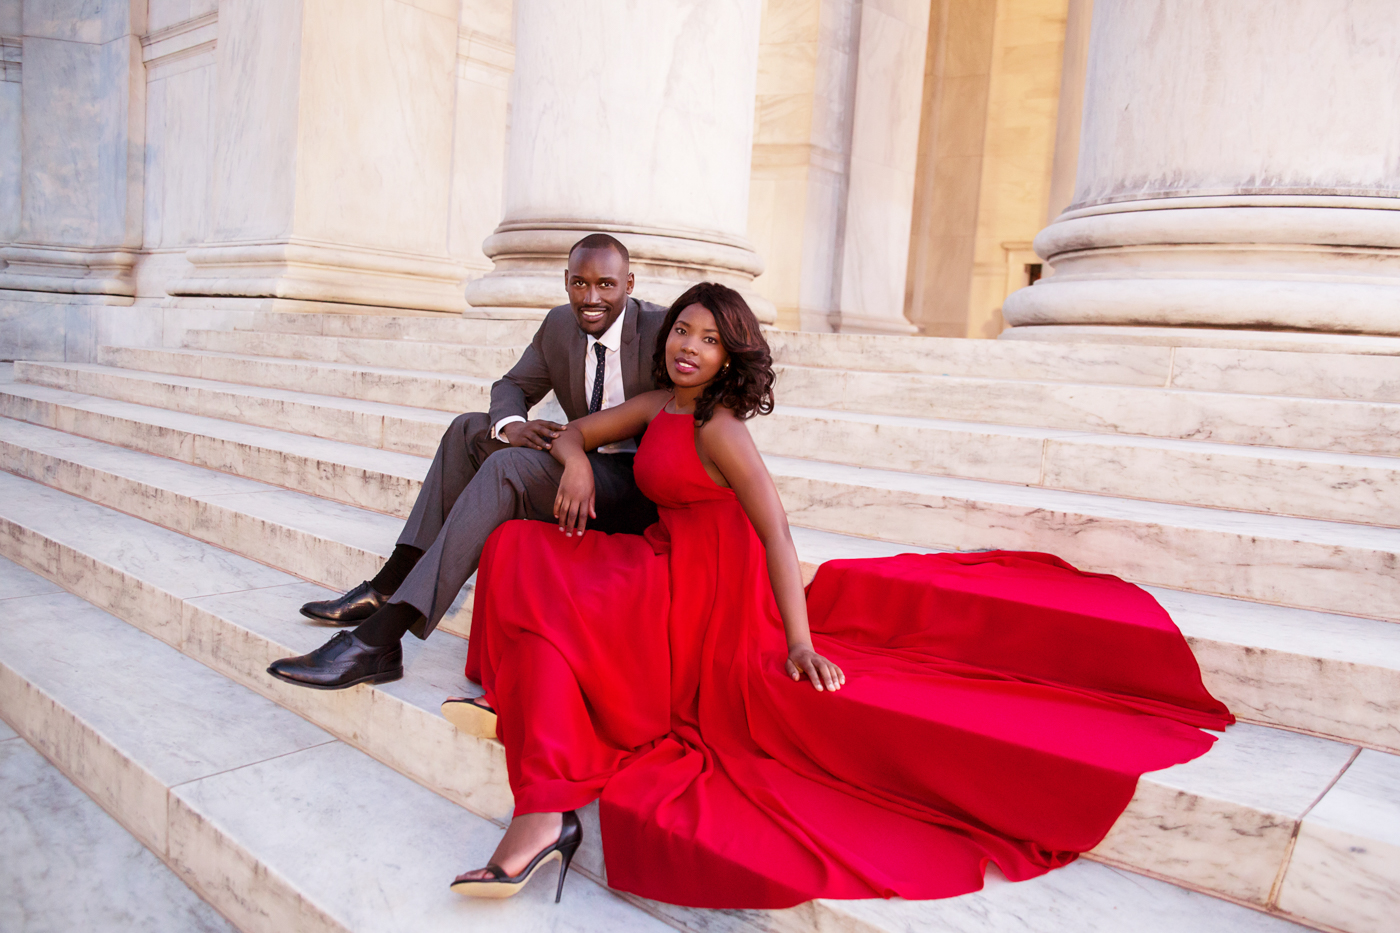 Jessica-Daniel-Engagement-Photo-Shoot-in-the-heart-of-Washington-DC-Ksenia-Pro-Photography-17